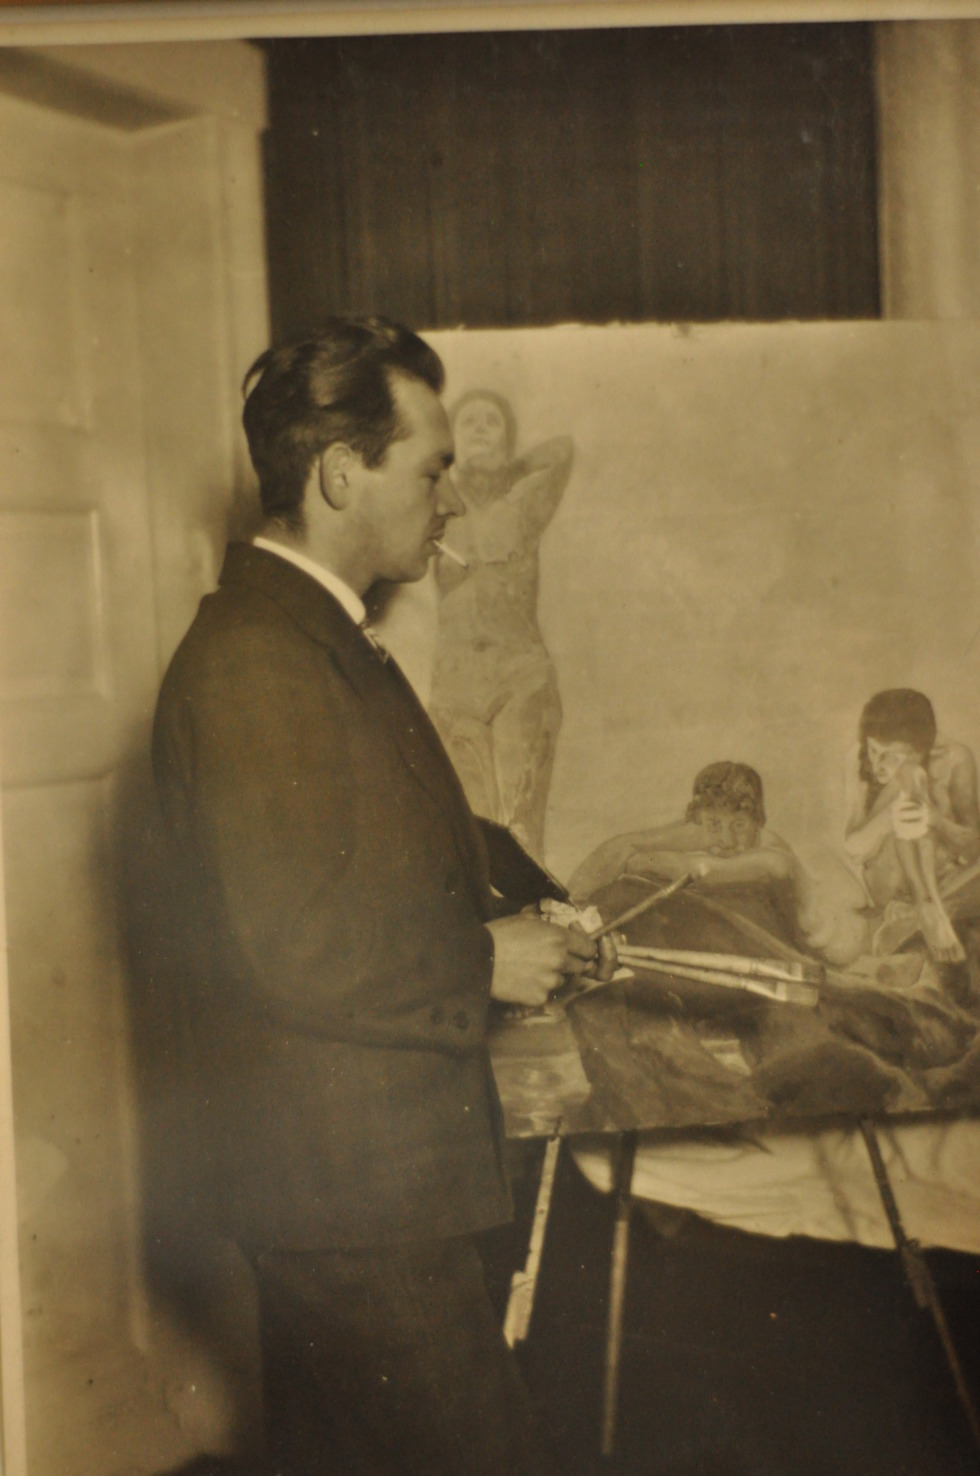 My great grandfather at his studio